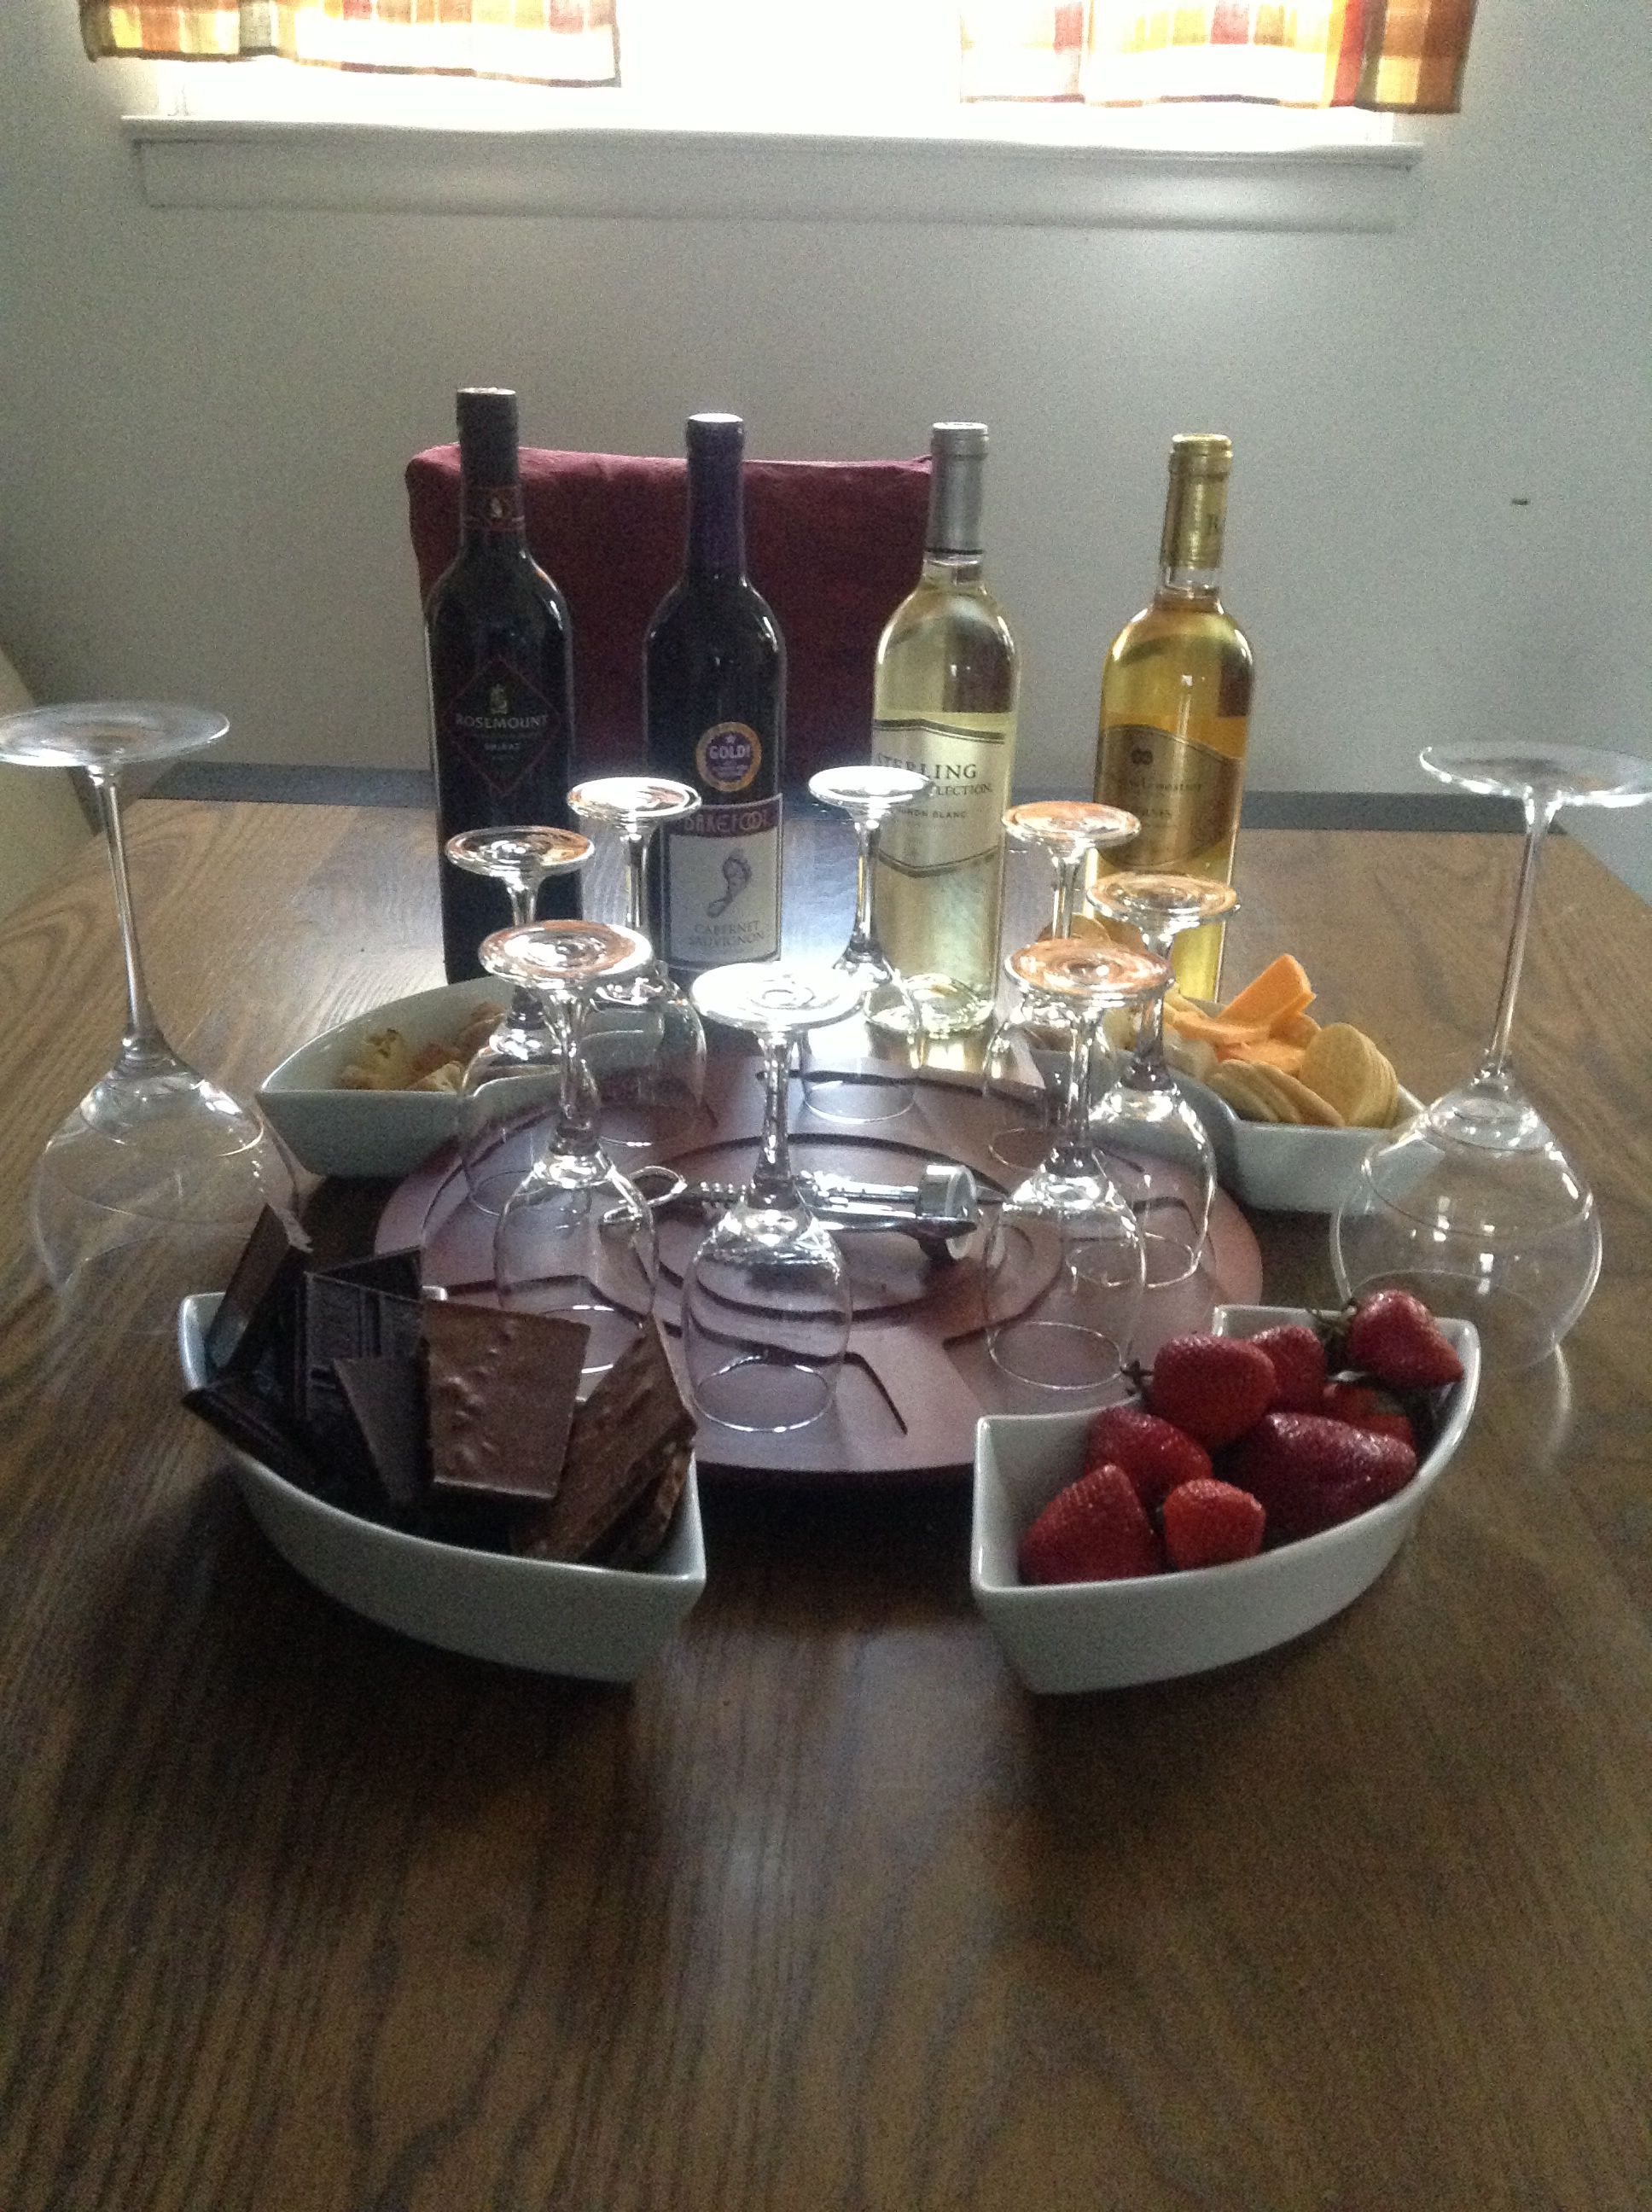 DIY Wine Tasting And Food Pairing For A Stay At Home Date Night!